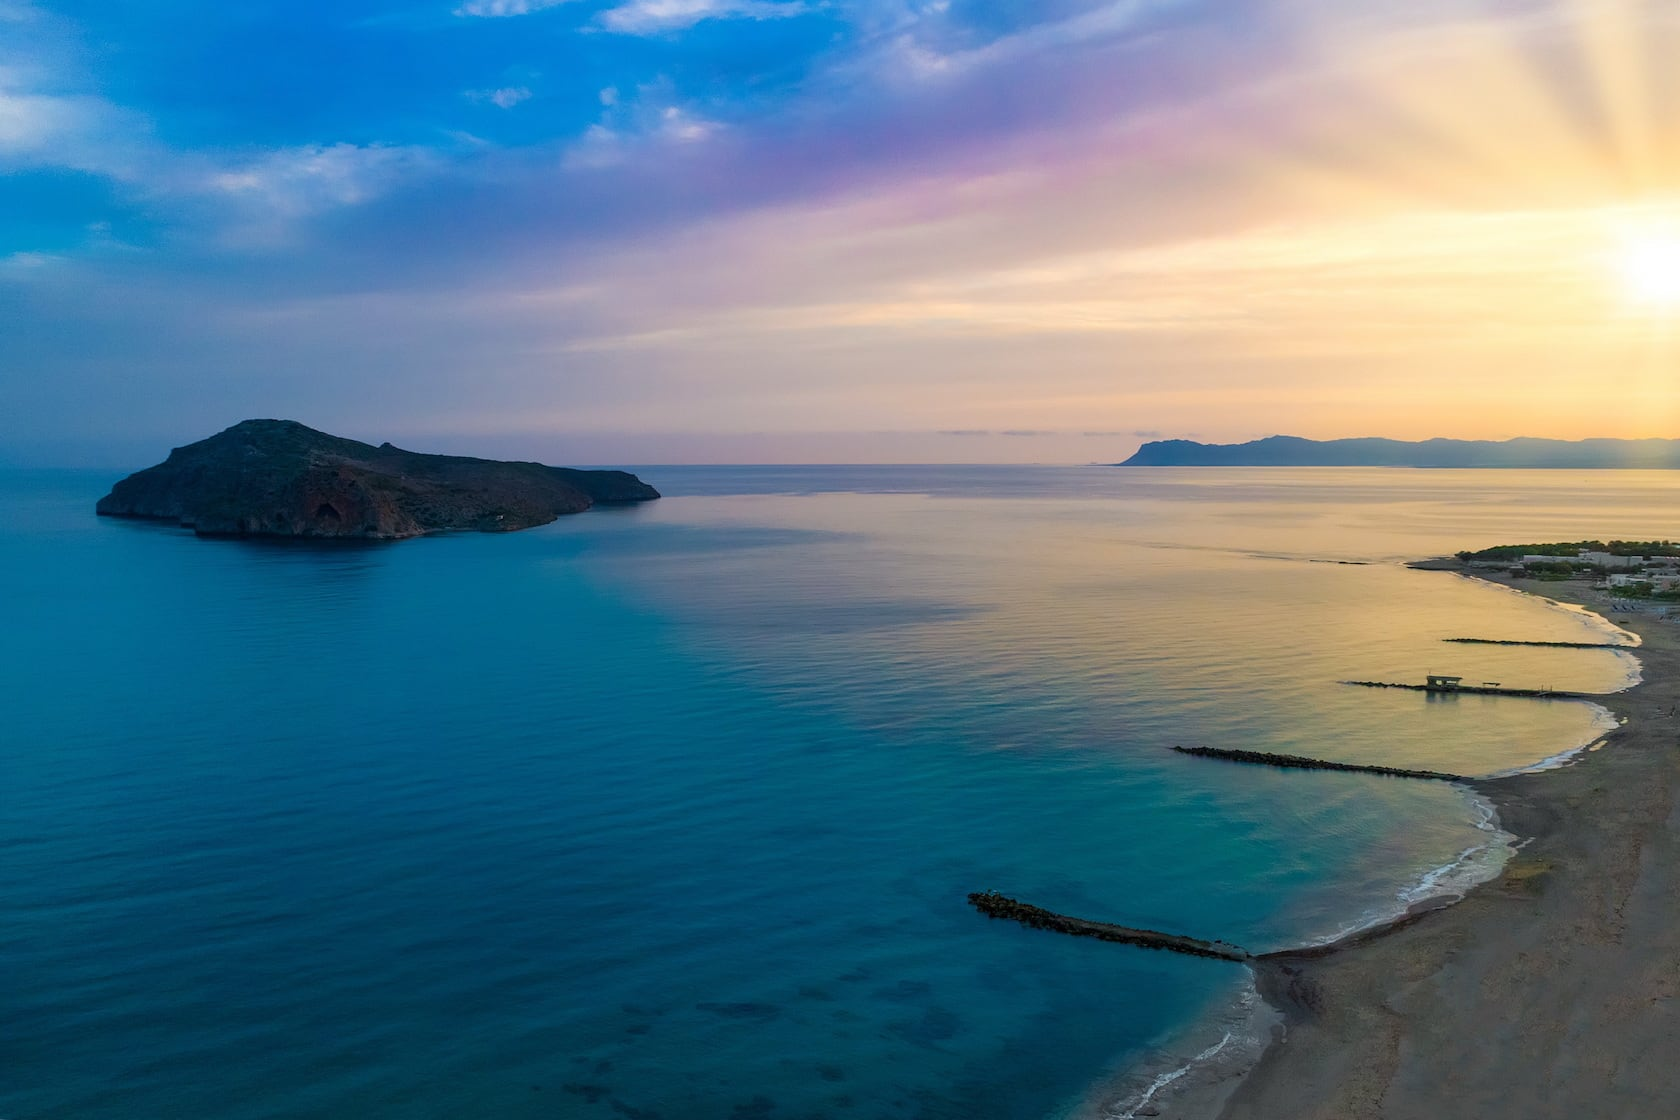 The beach of Agia Marina - Platanias where the Oscar Suites & Village hotel is located.